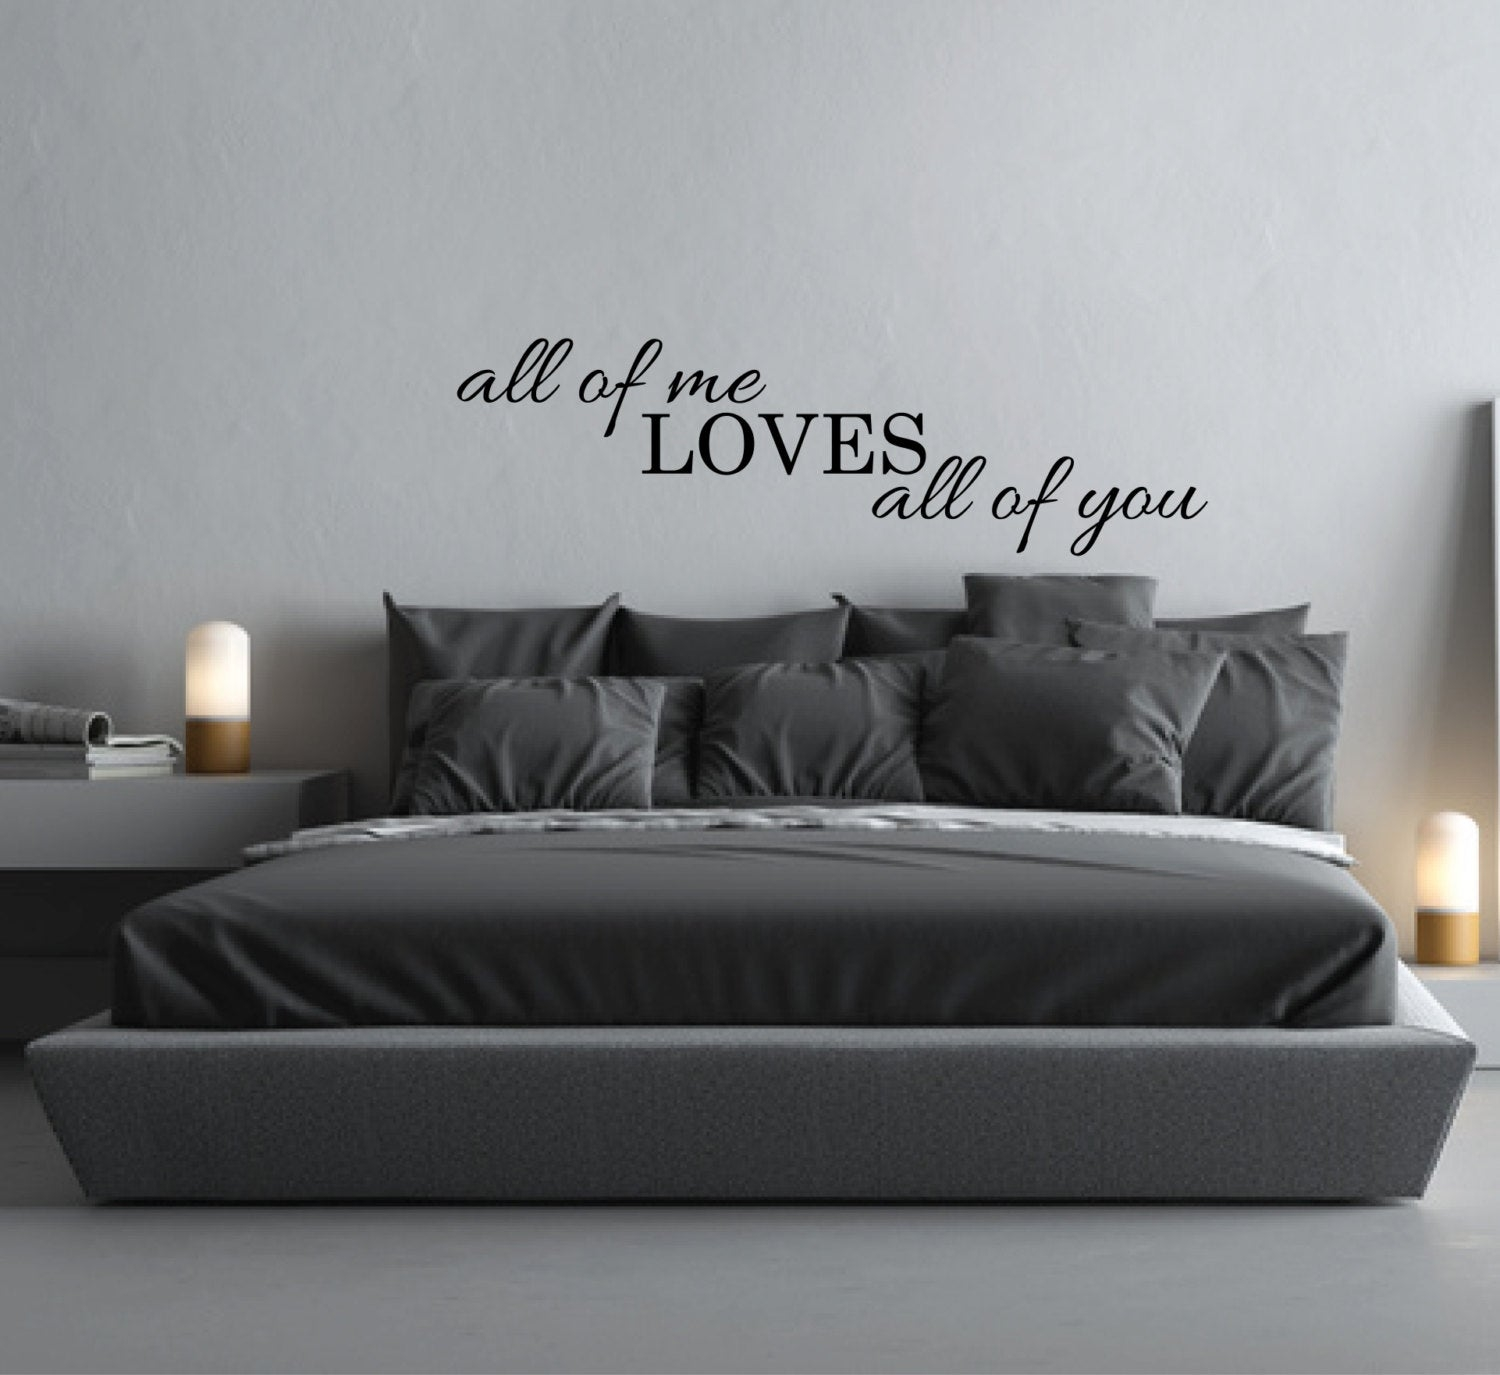 Wall Sticker Quote All of me Loves all of you Above Bed Decor